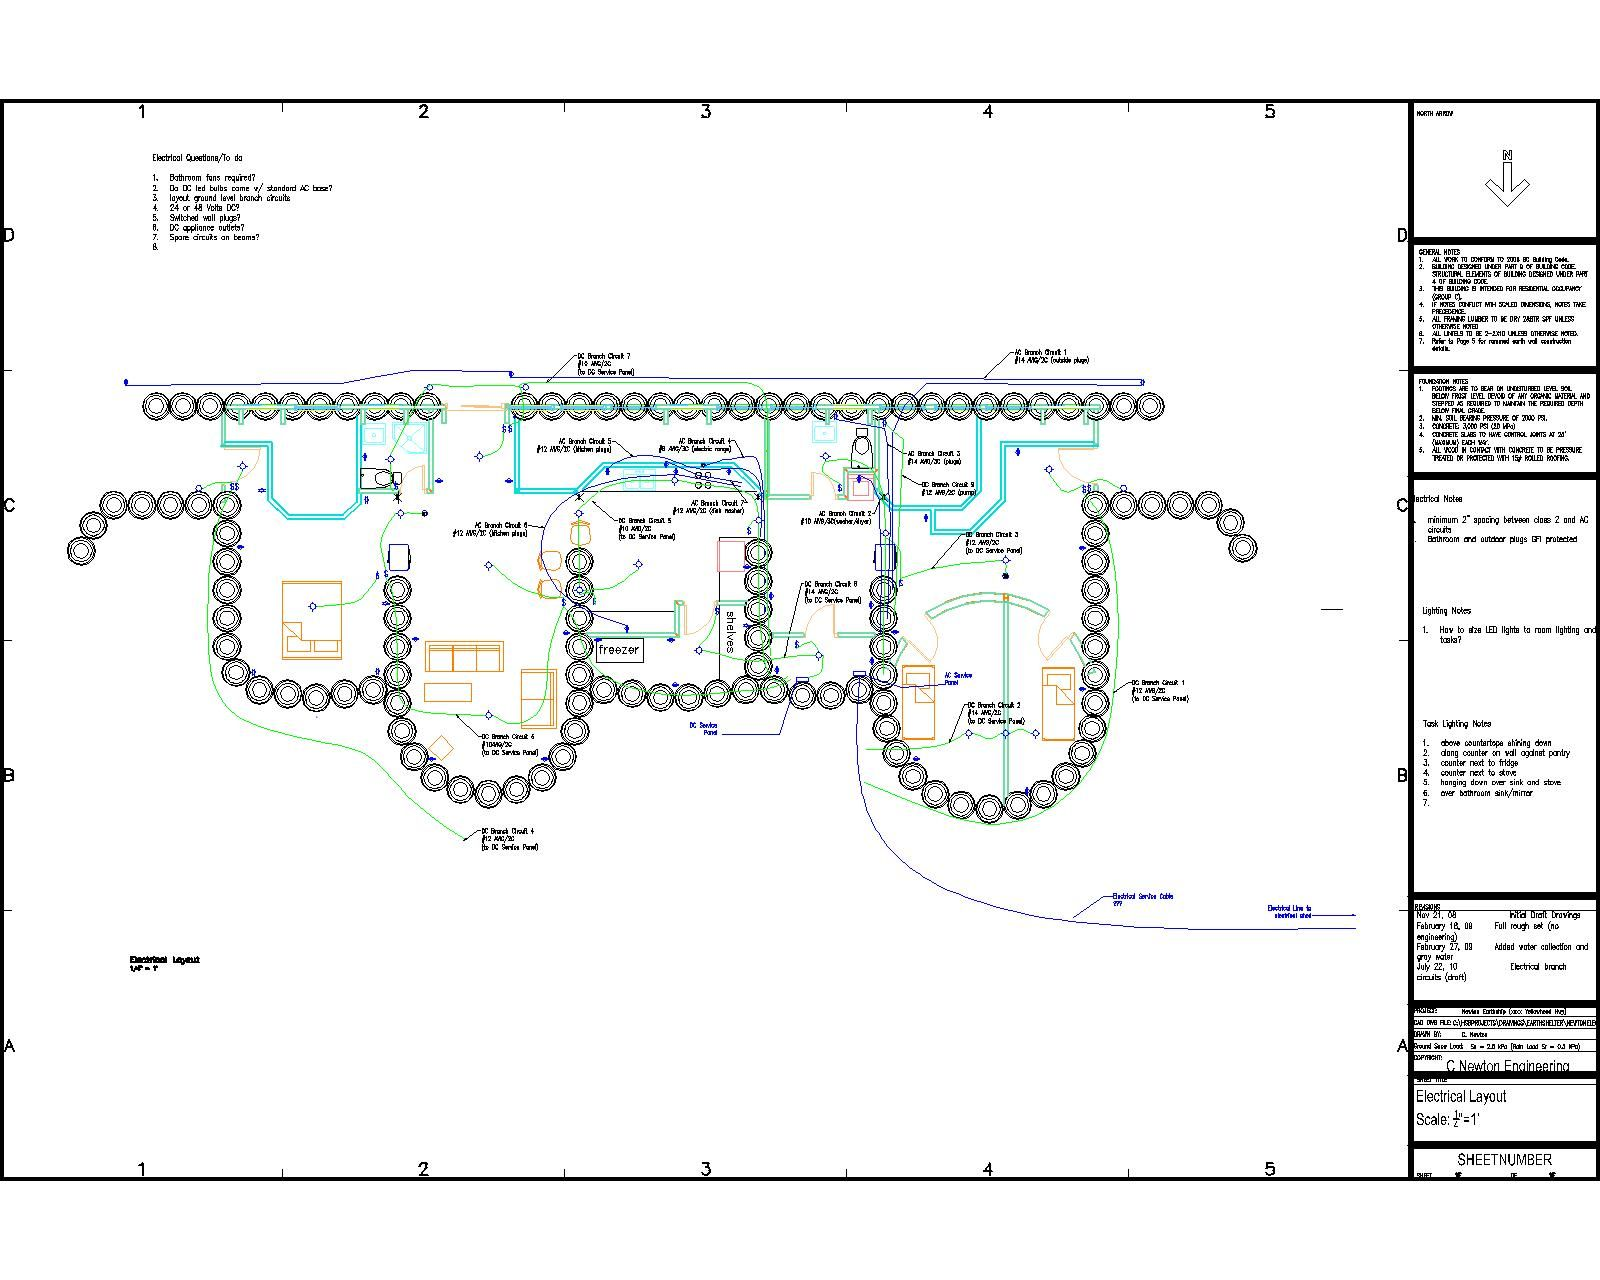 Earthship plans and designs pictures - Earthship Blueprints Floor Plan Of Tire House Earthship Earthship Earthships Pinterest Earthship House And Earthship Plans